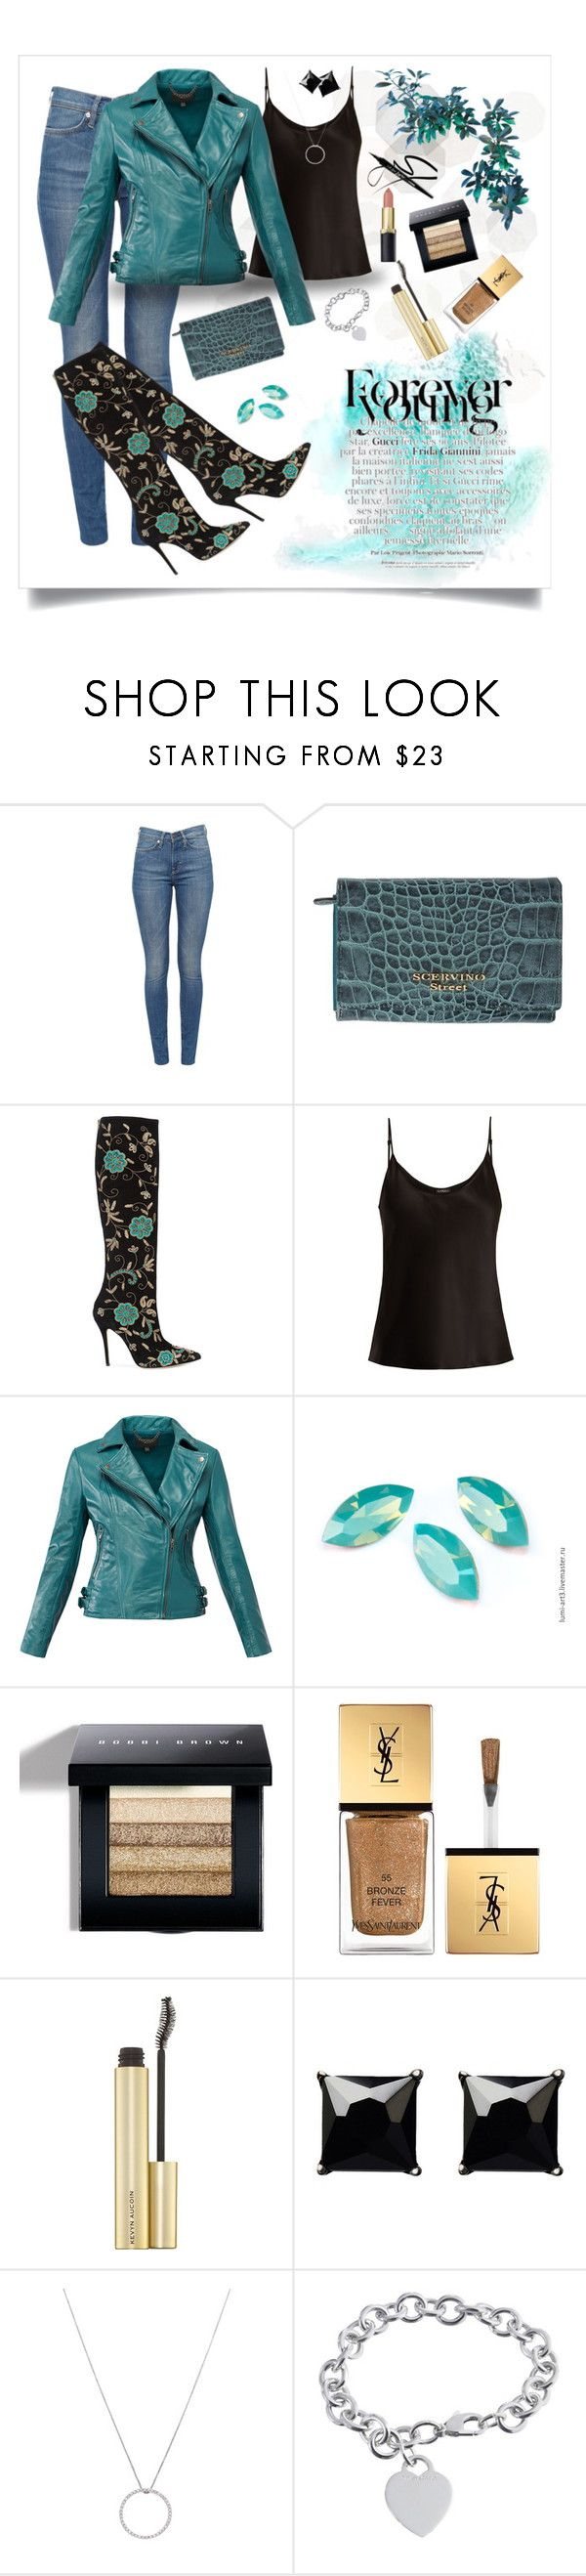 """""""Forever Teal"""" by brittallan ❤ liked on Polyvore featuring SCERVINO STREET, Oscar de la Renta, La Perla, MuuBaa, Bobbi Brown Cosmetics, Yves Saint Laurent, Witchery, Roberto Coin and Tiffany & Co."""